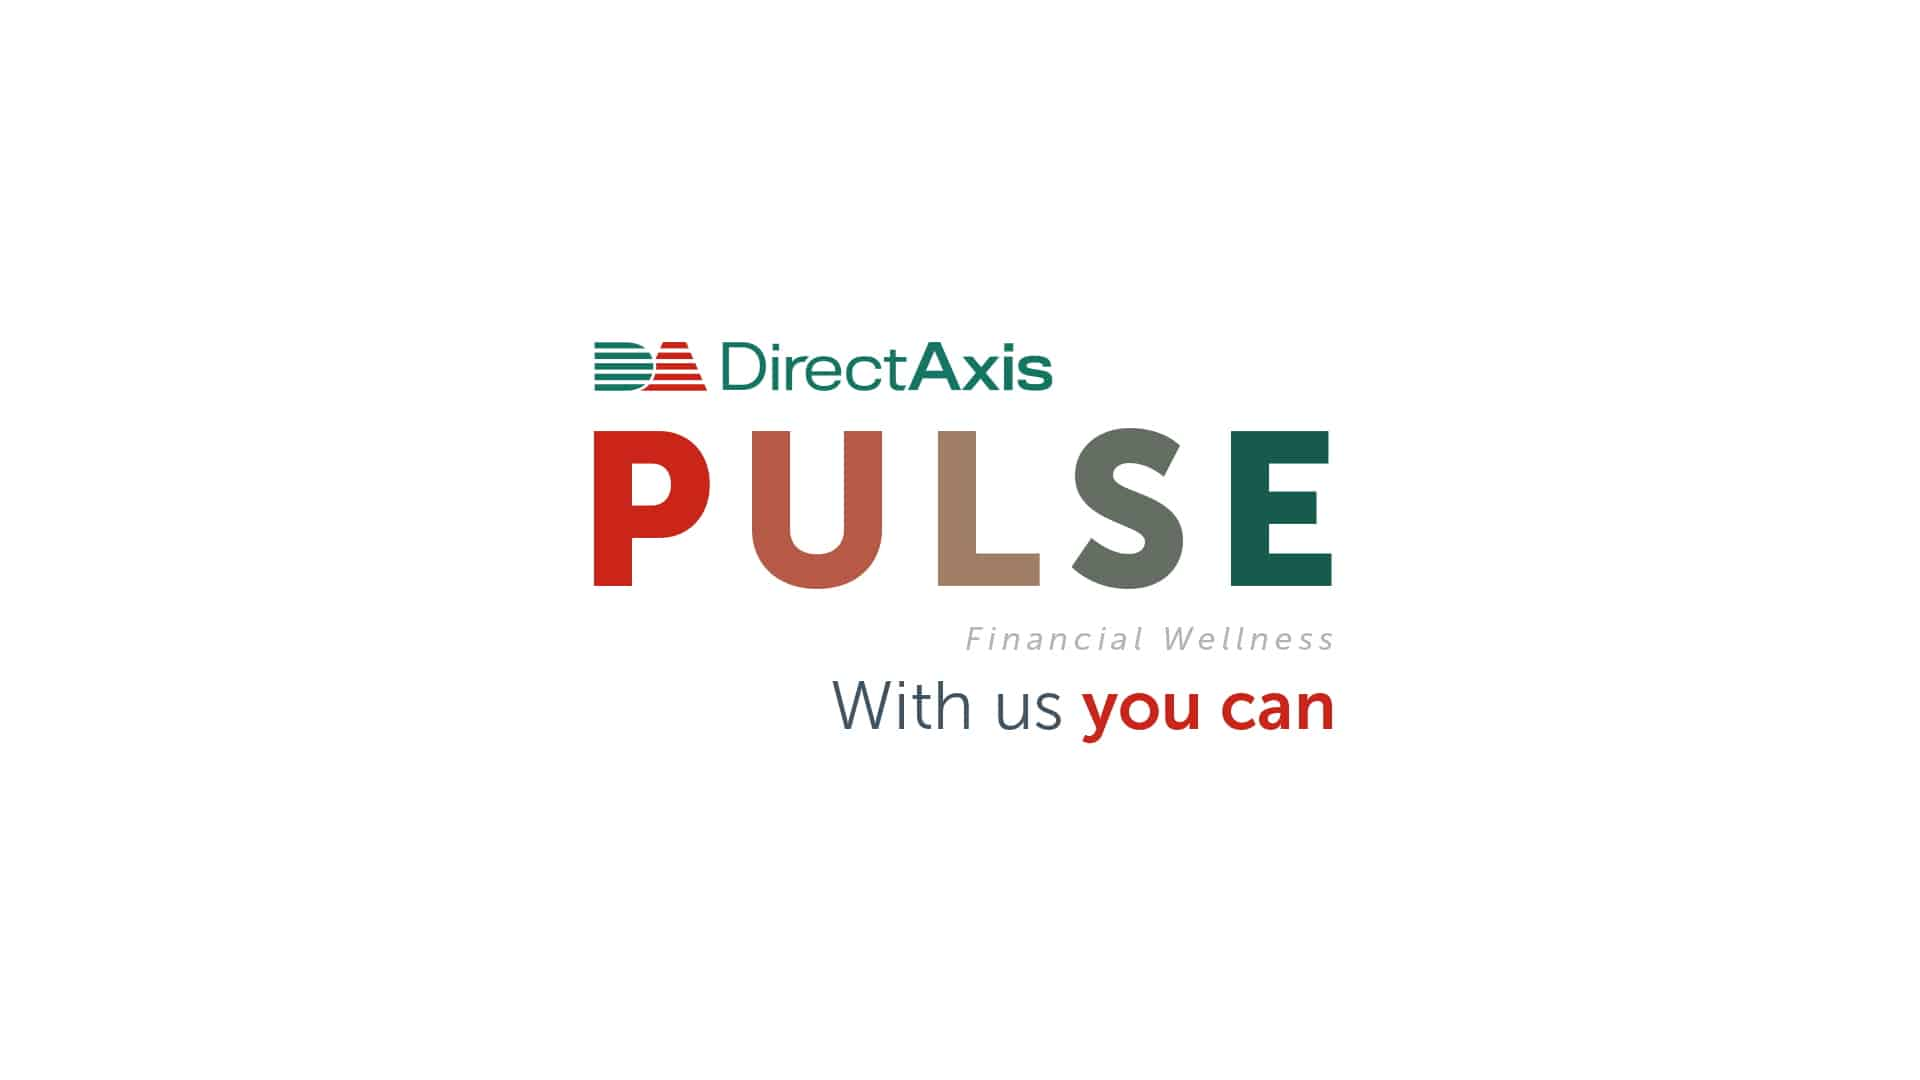 DirectAxis Pulse